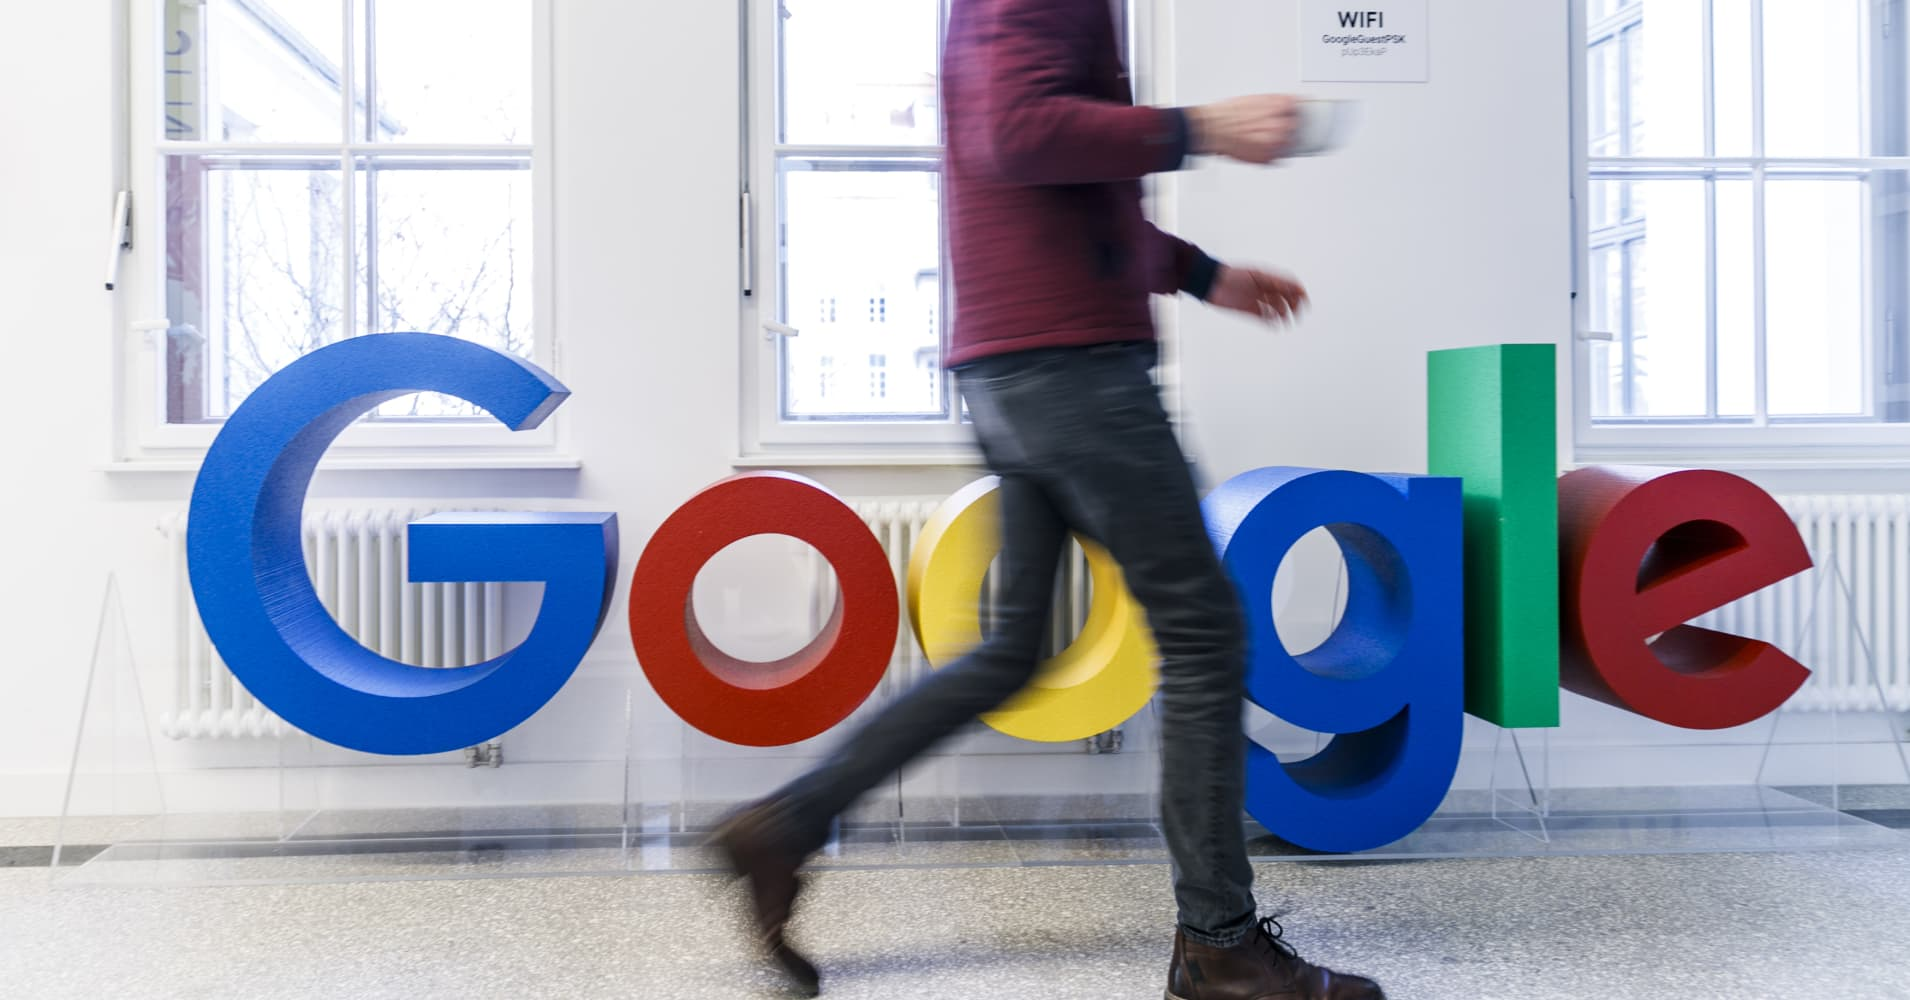 Google plans to ban political ads before Canada election